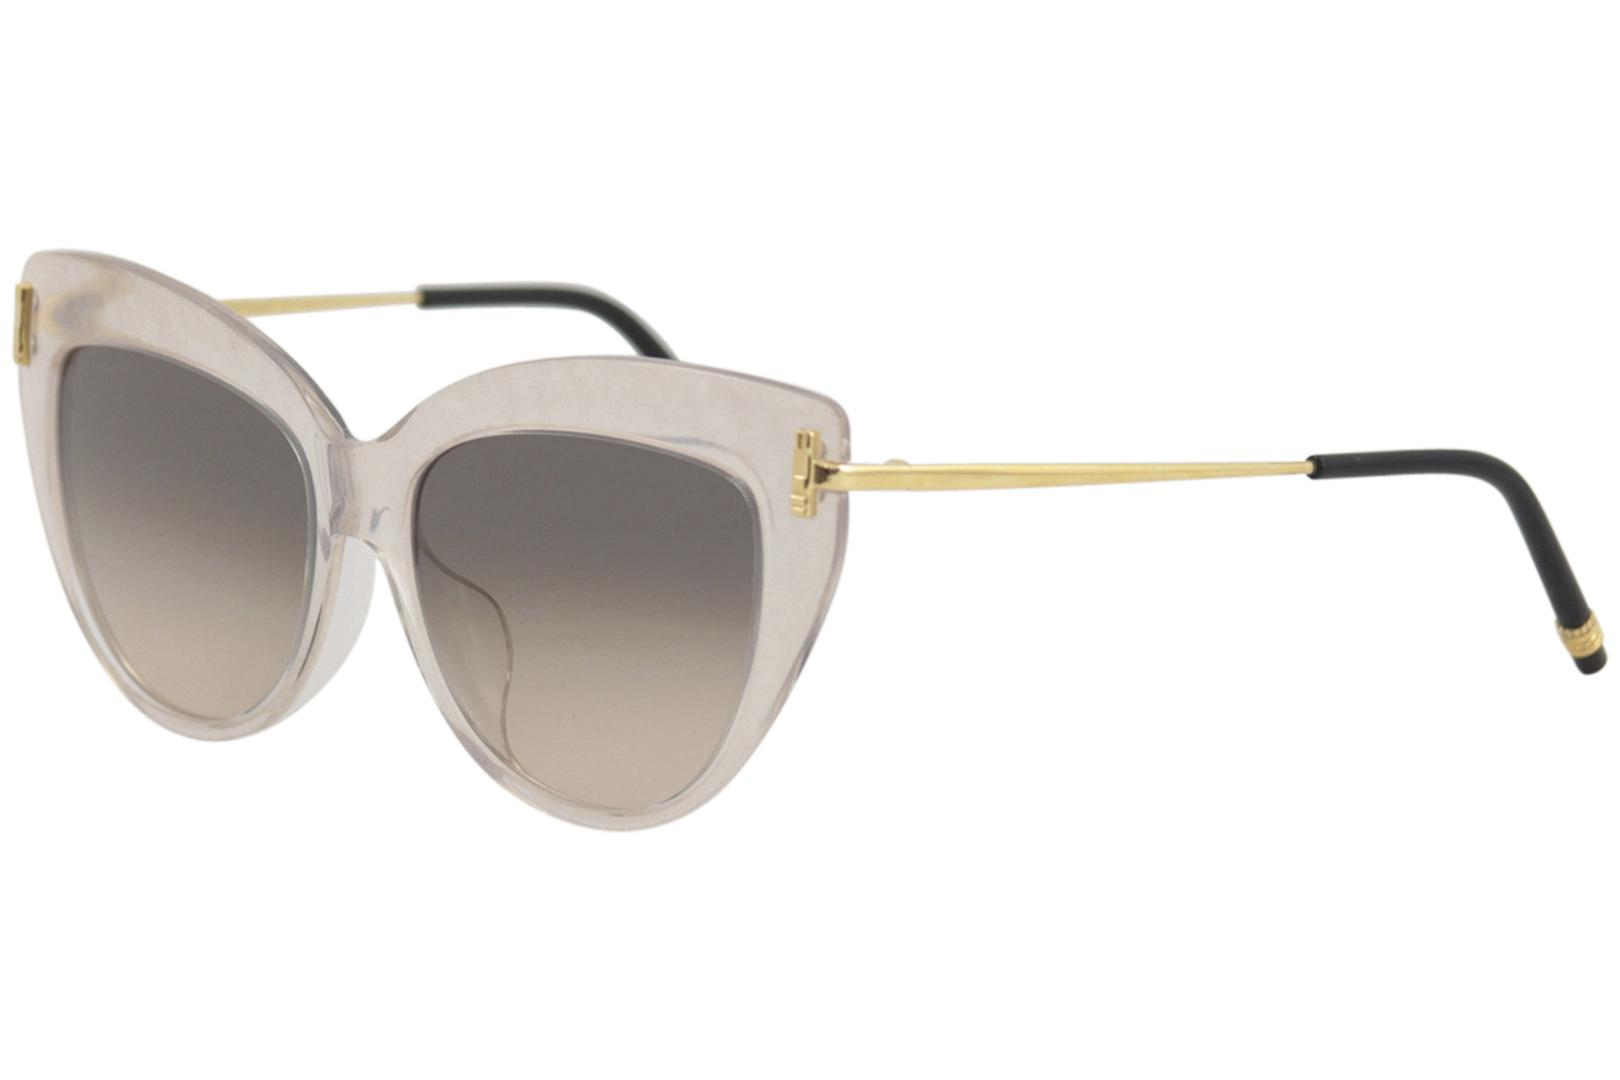 Image of - Beige Transparent Gold/Grey Gradient 003 - Lens 53 Bridge 19 Temple 140mm